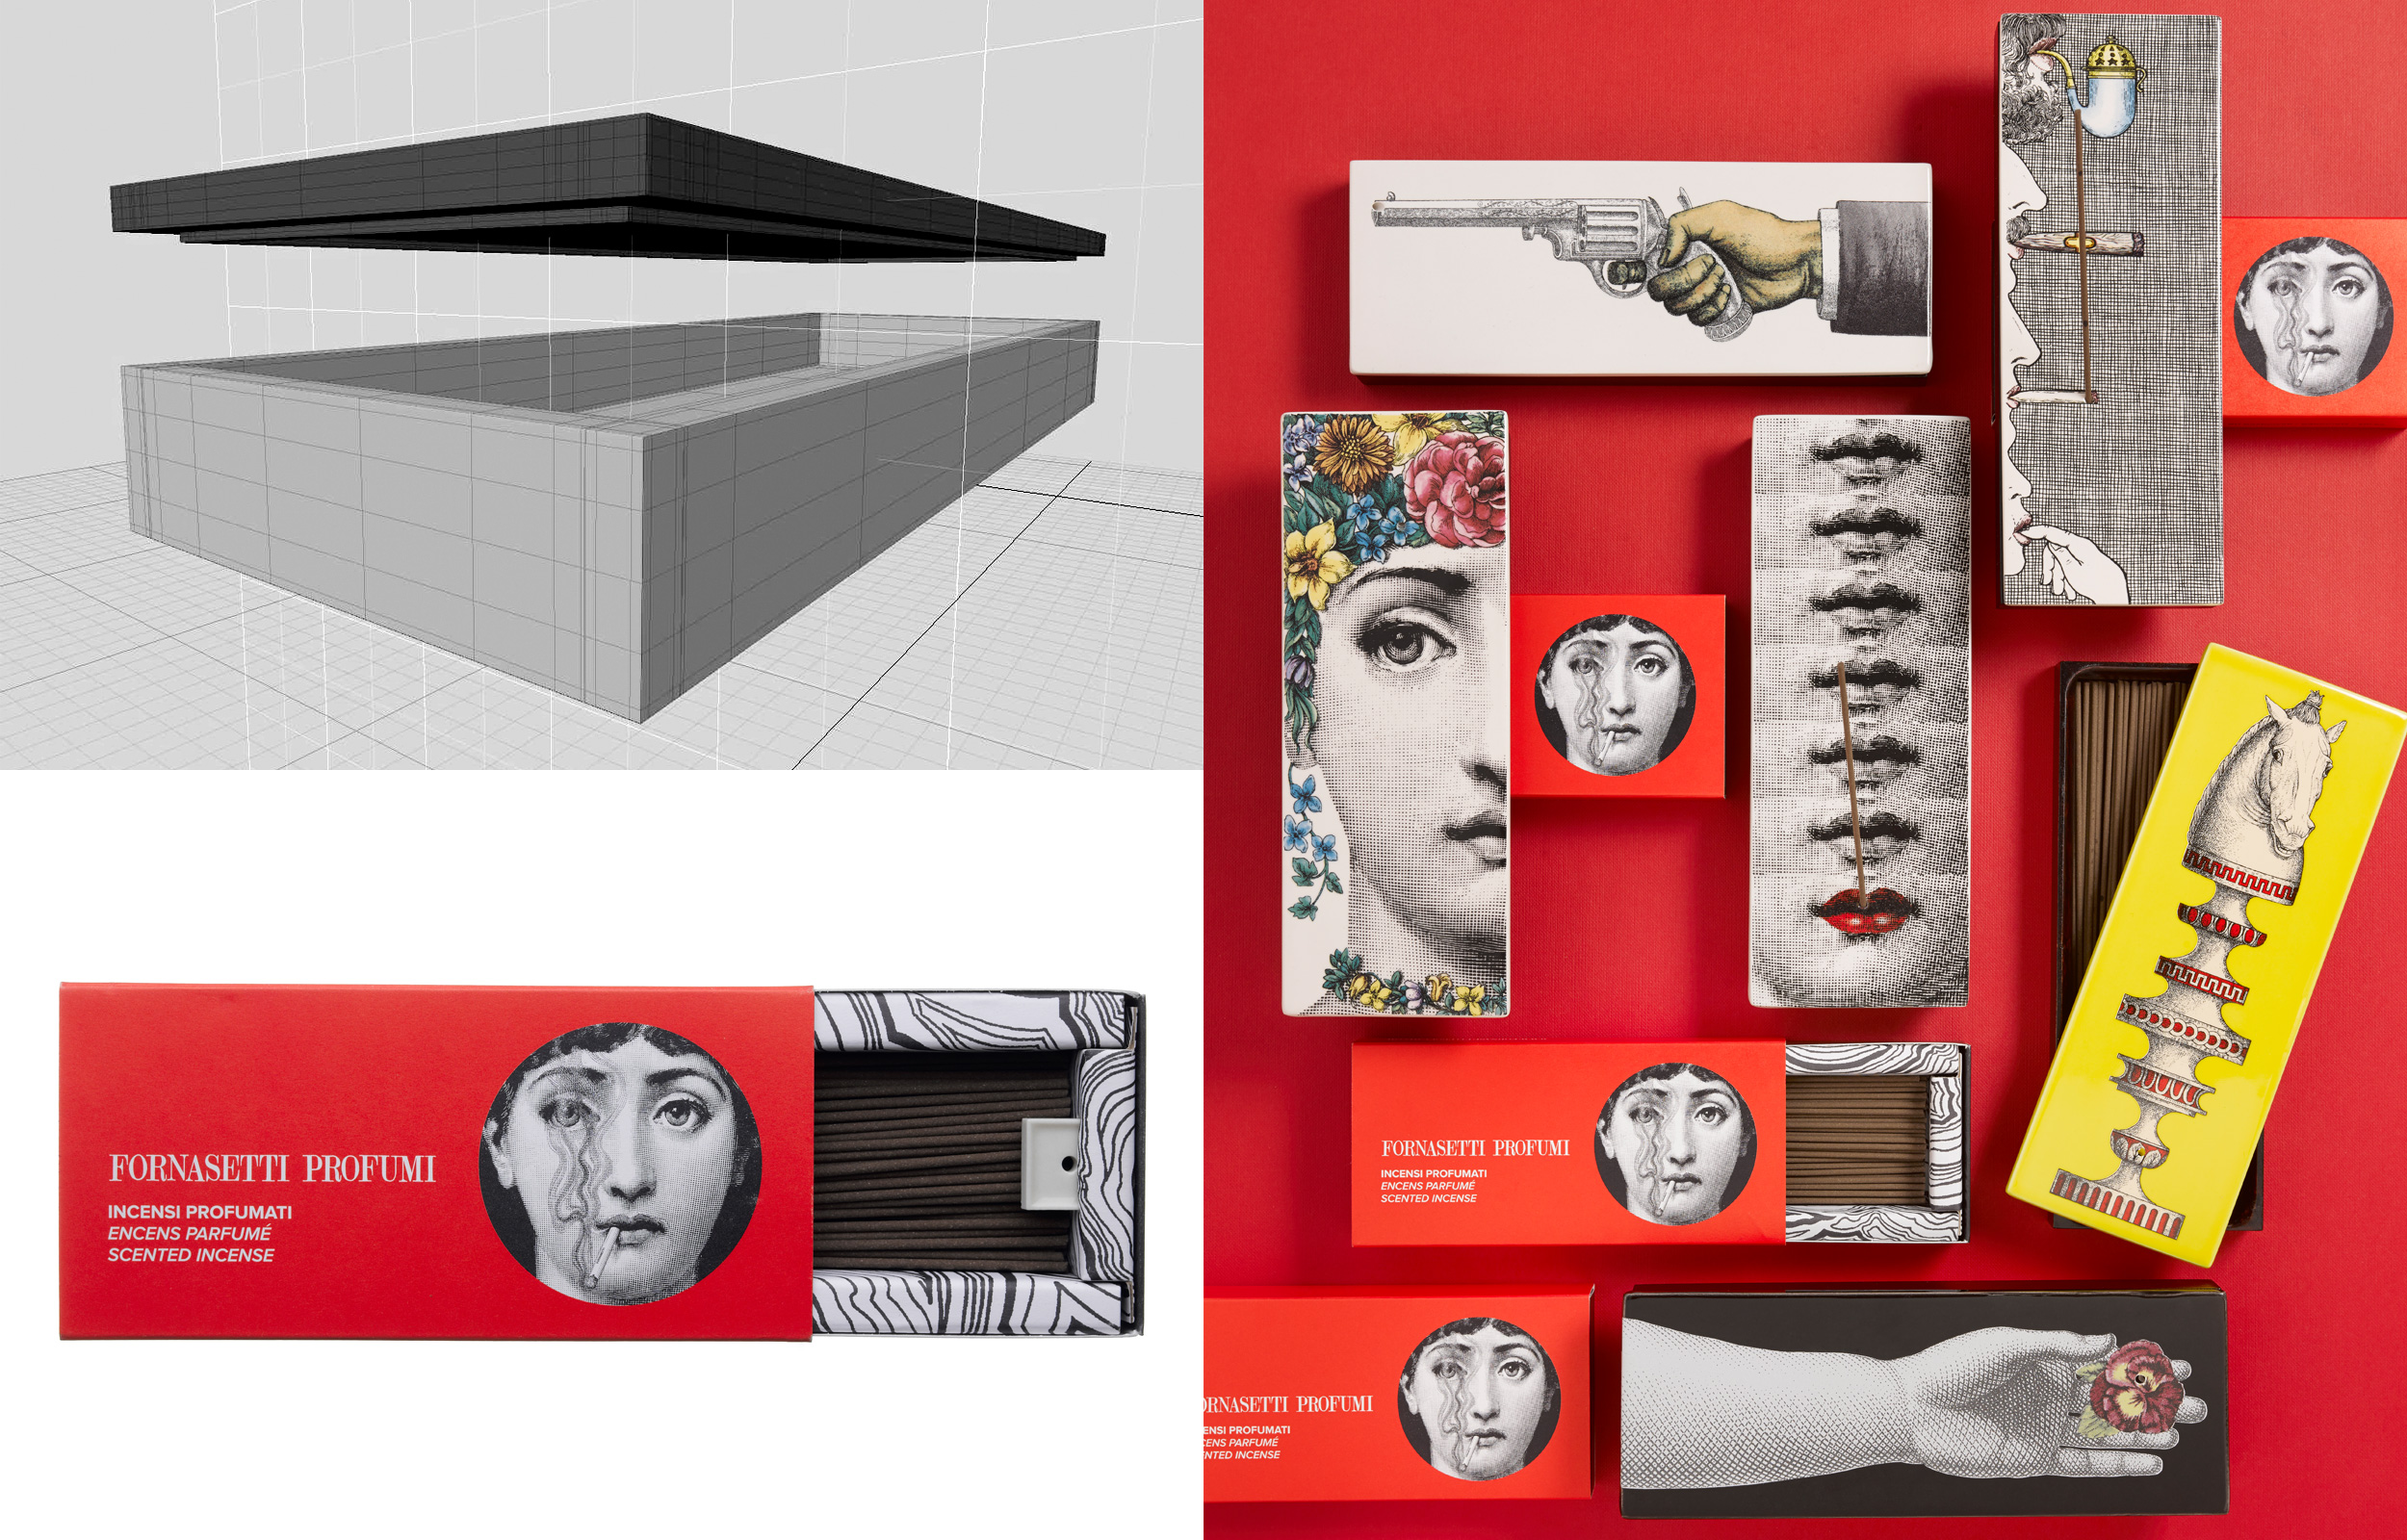 Fornasetti-Product-Design-narrative4